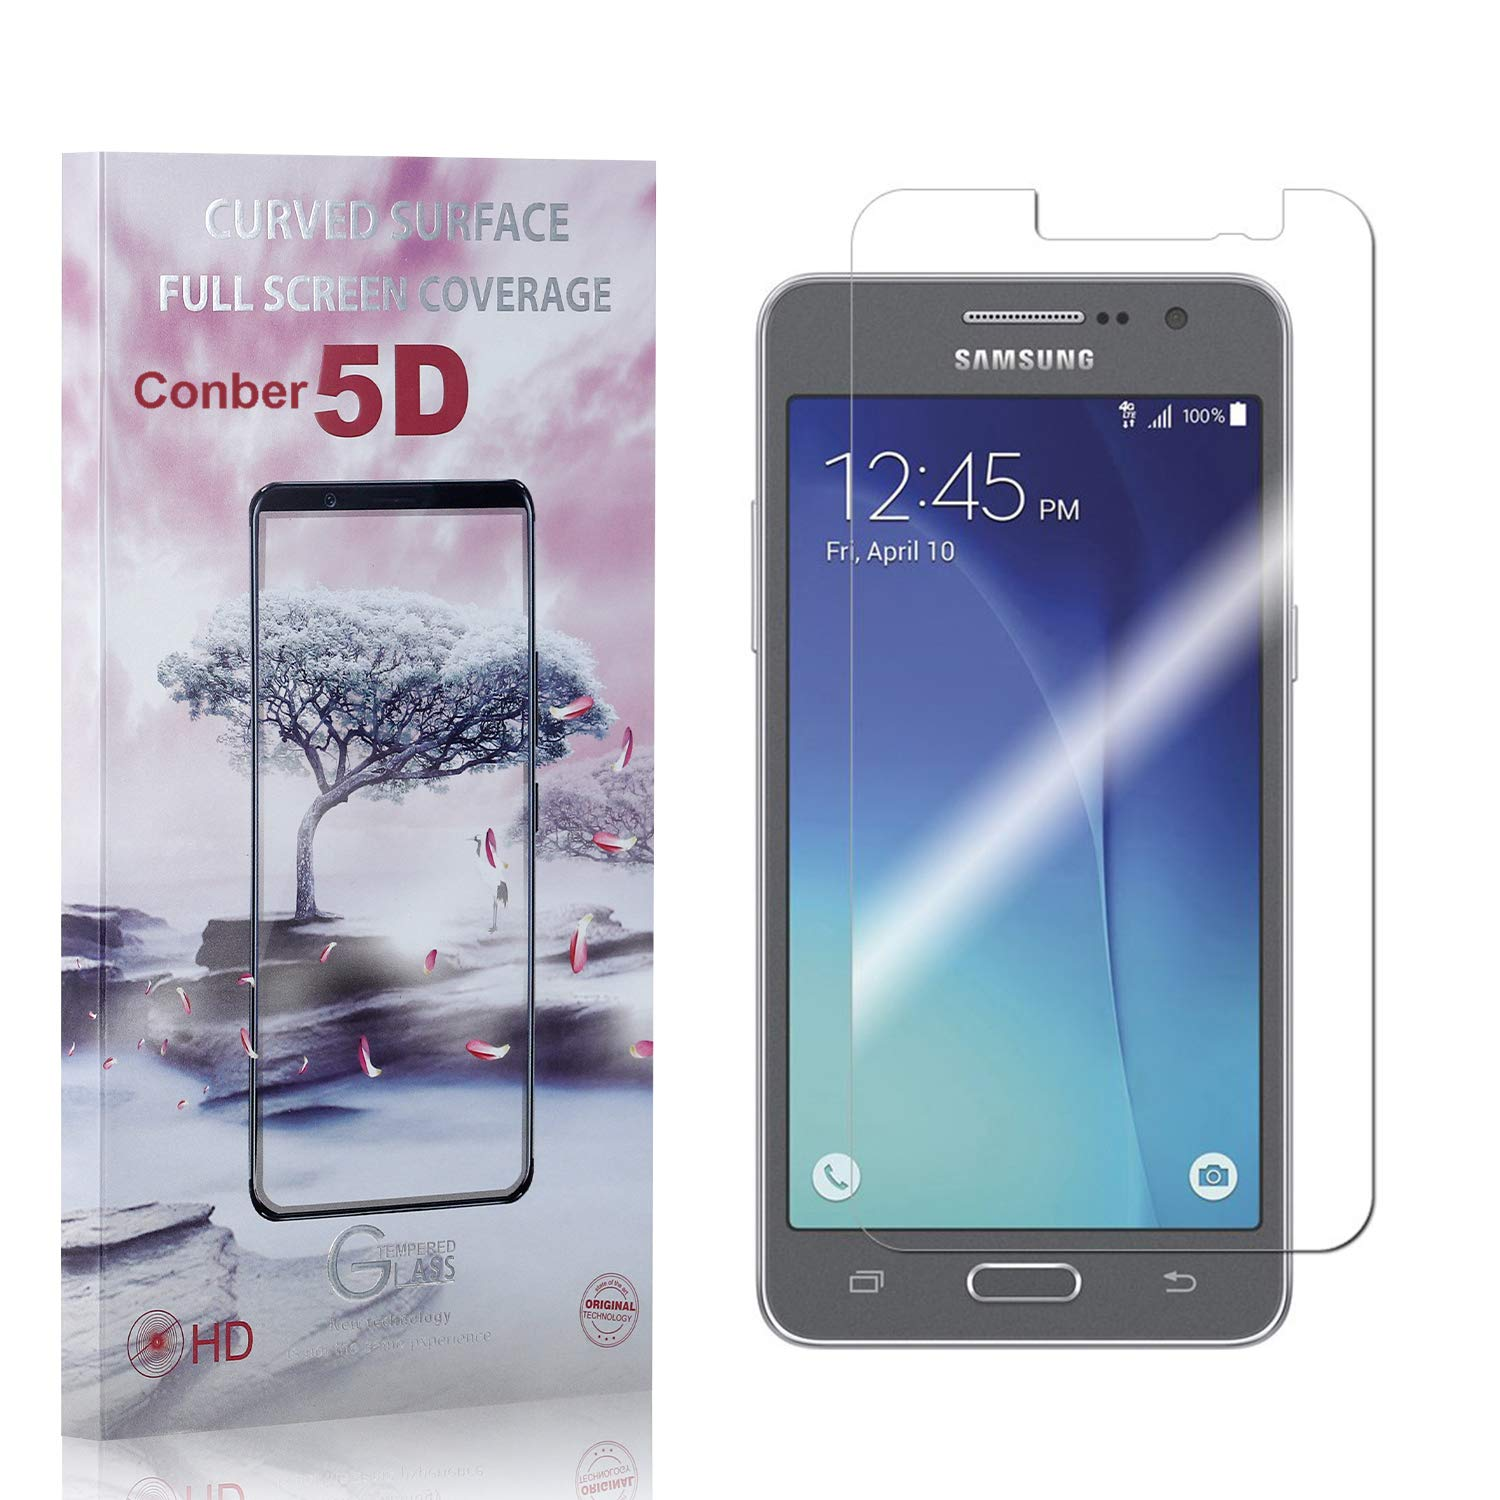 Conber 3 Pack Super sale period limited Screen Protector Grand Surprise price Galaxy for Samsung Prime